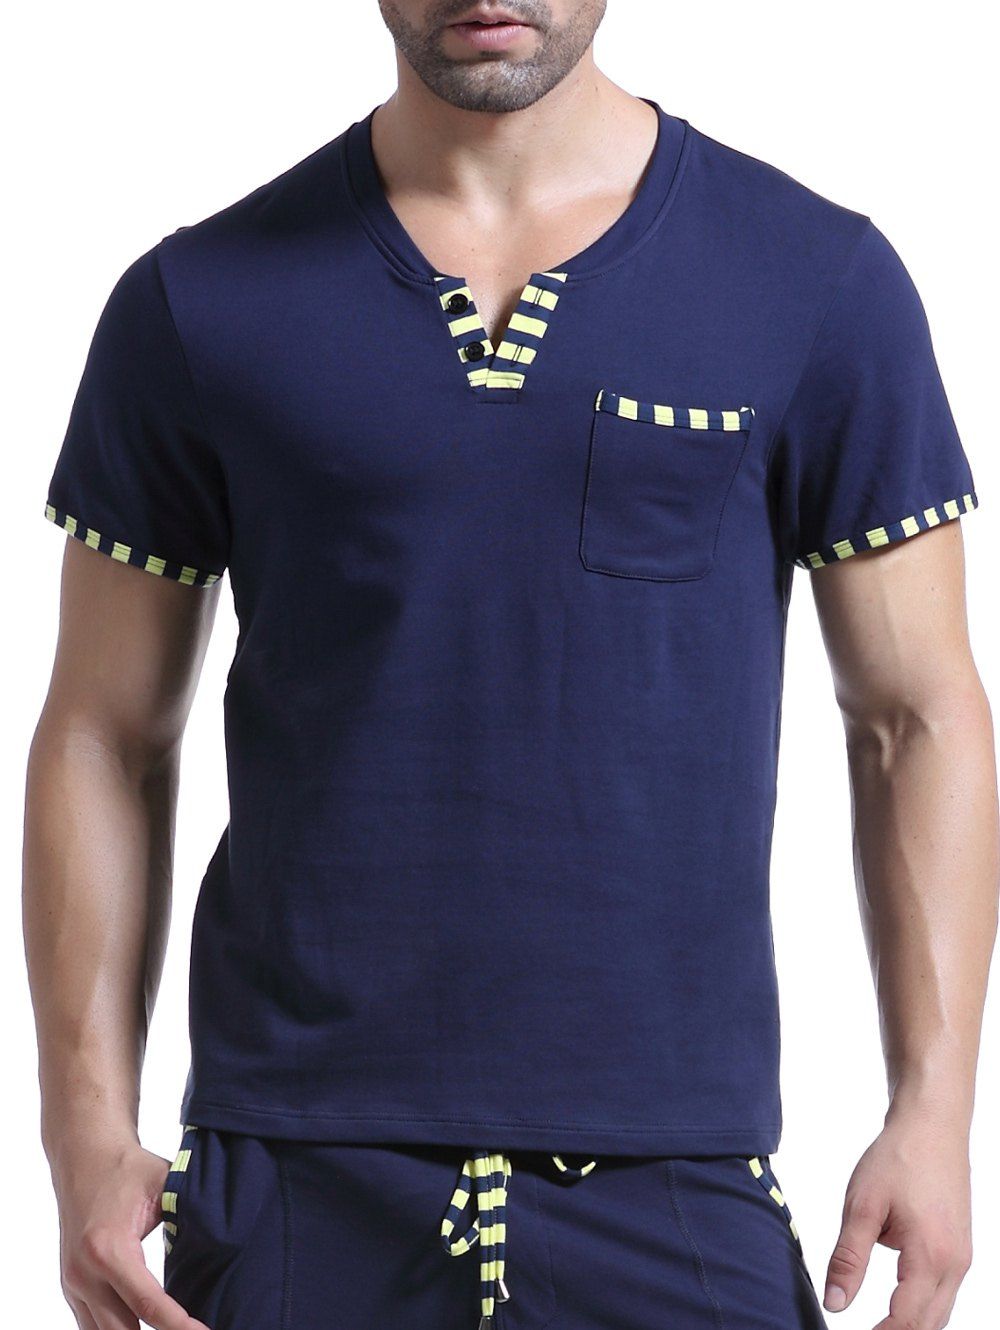 Casual V-Neck Striped Printed Short Sleeve Men's T-Shirt - SAPPHIRE BLUE L